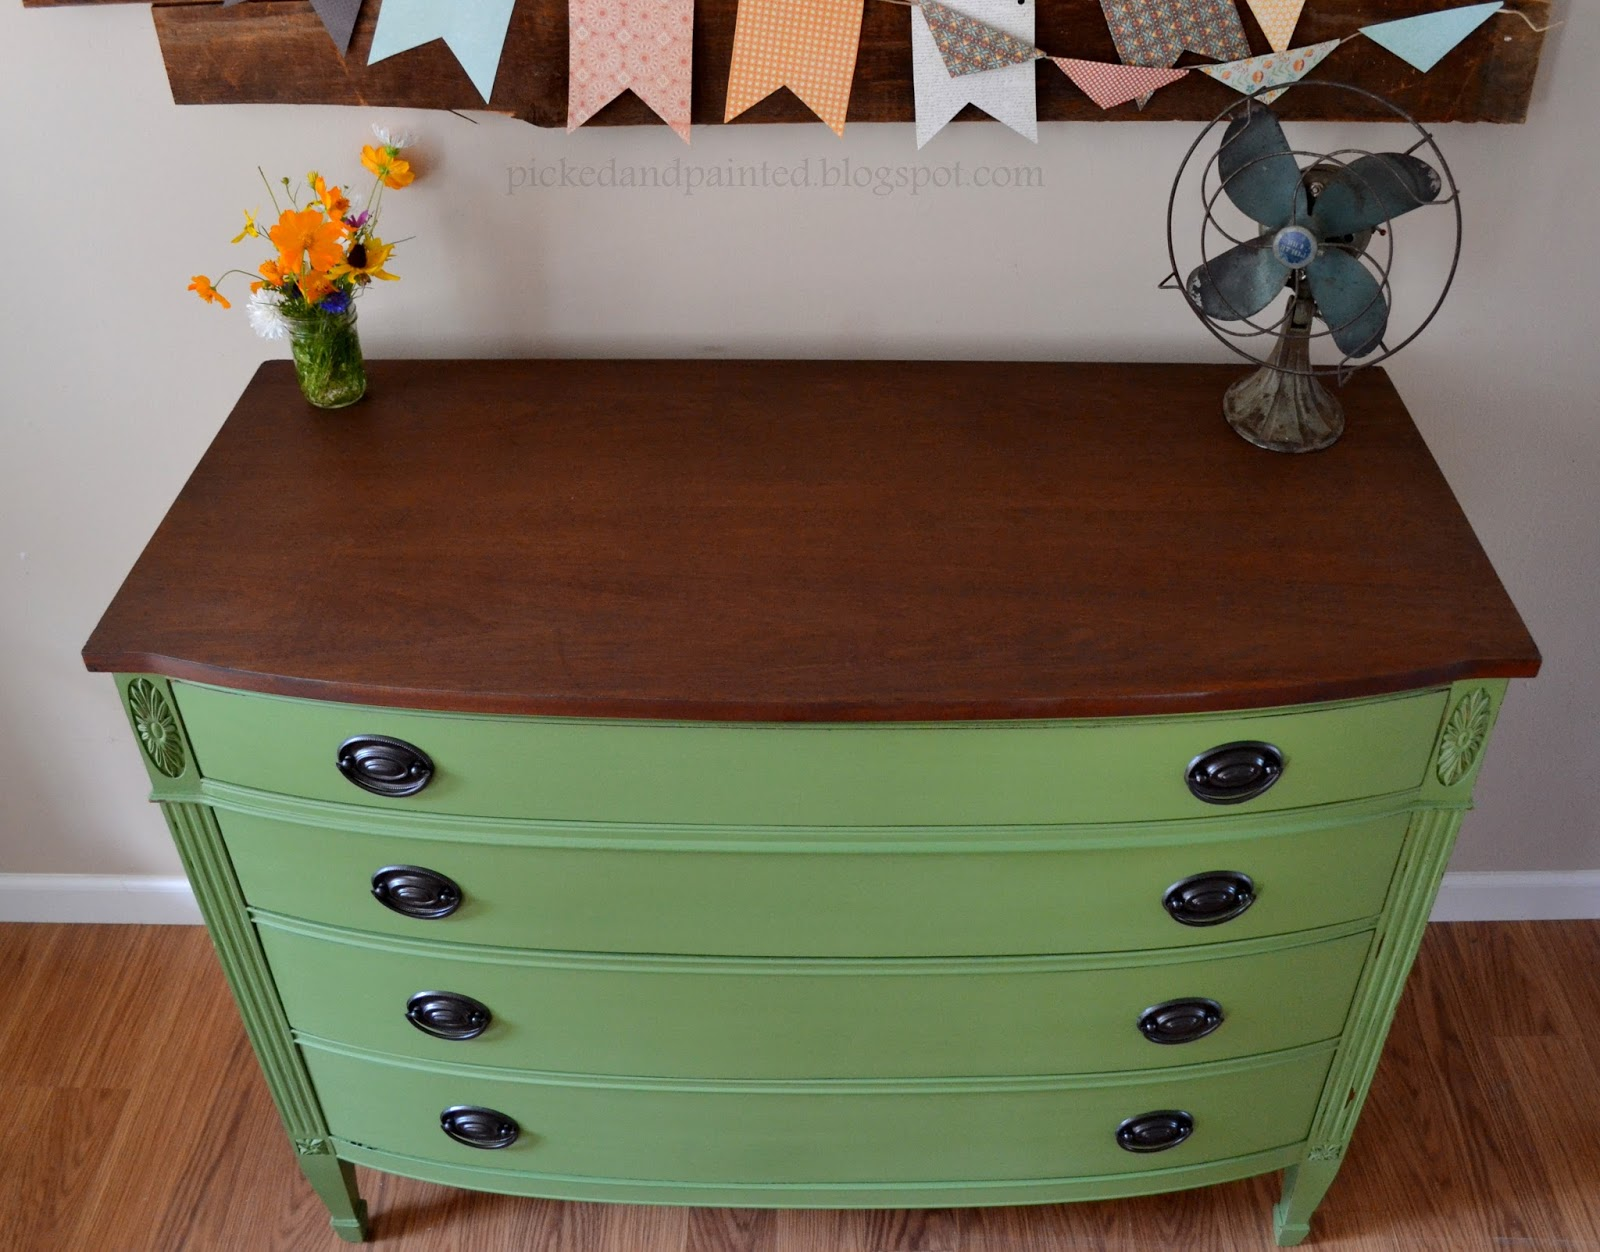 green painted furniture. Helen Nichole Designs. Furniture Made Pretty Green Painted